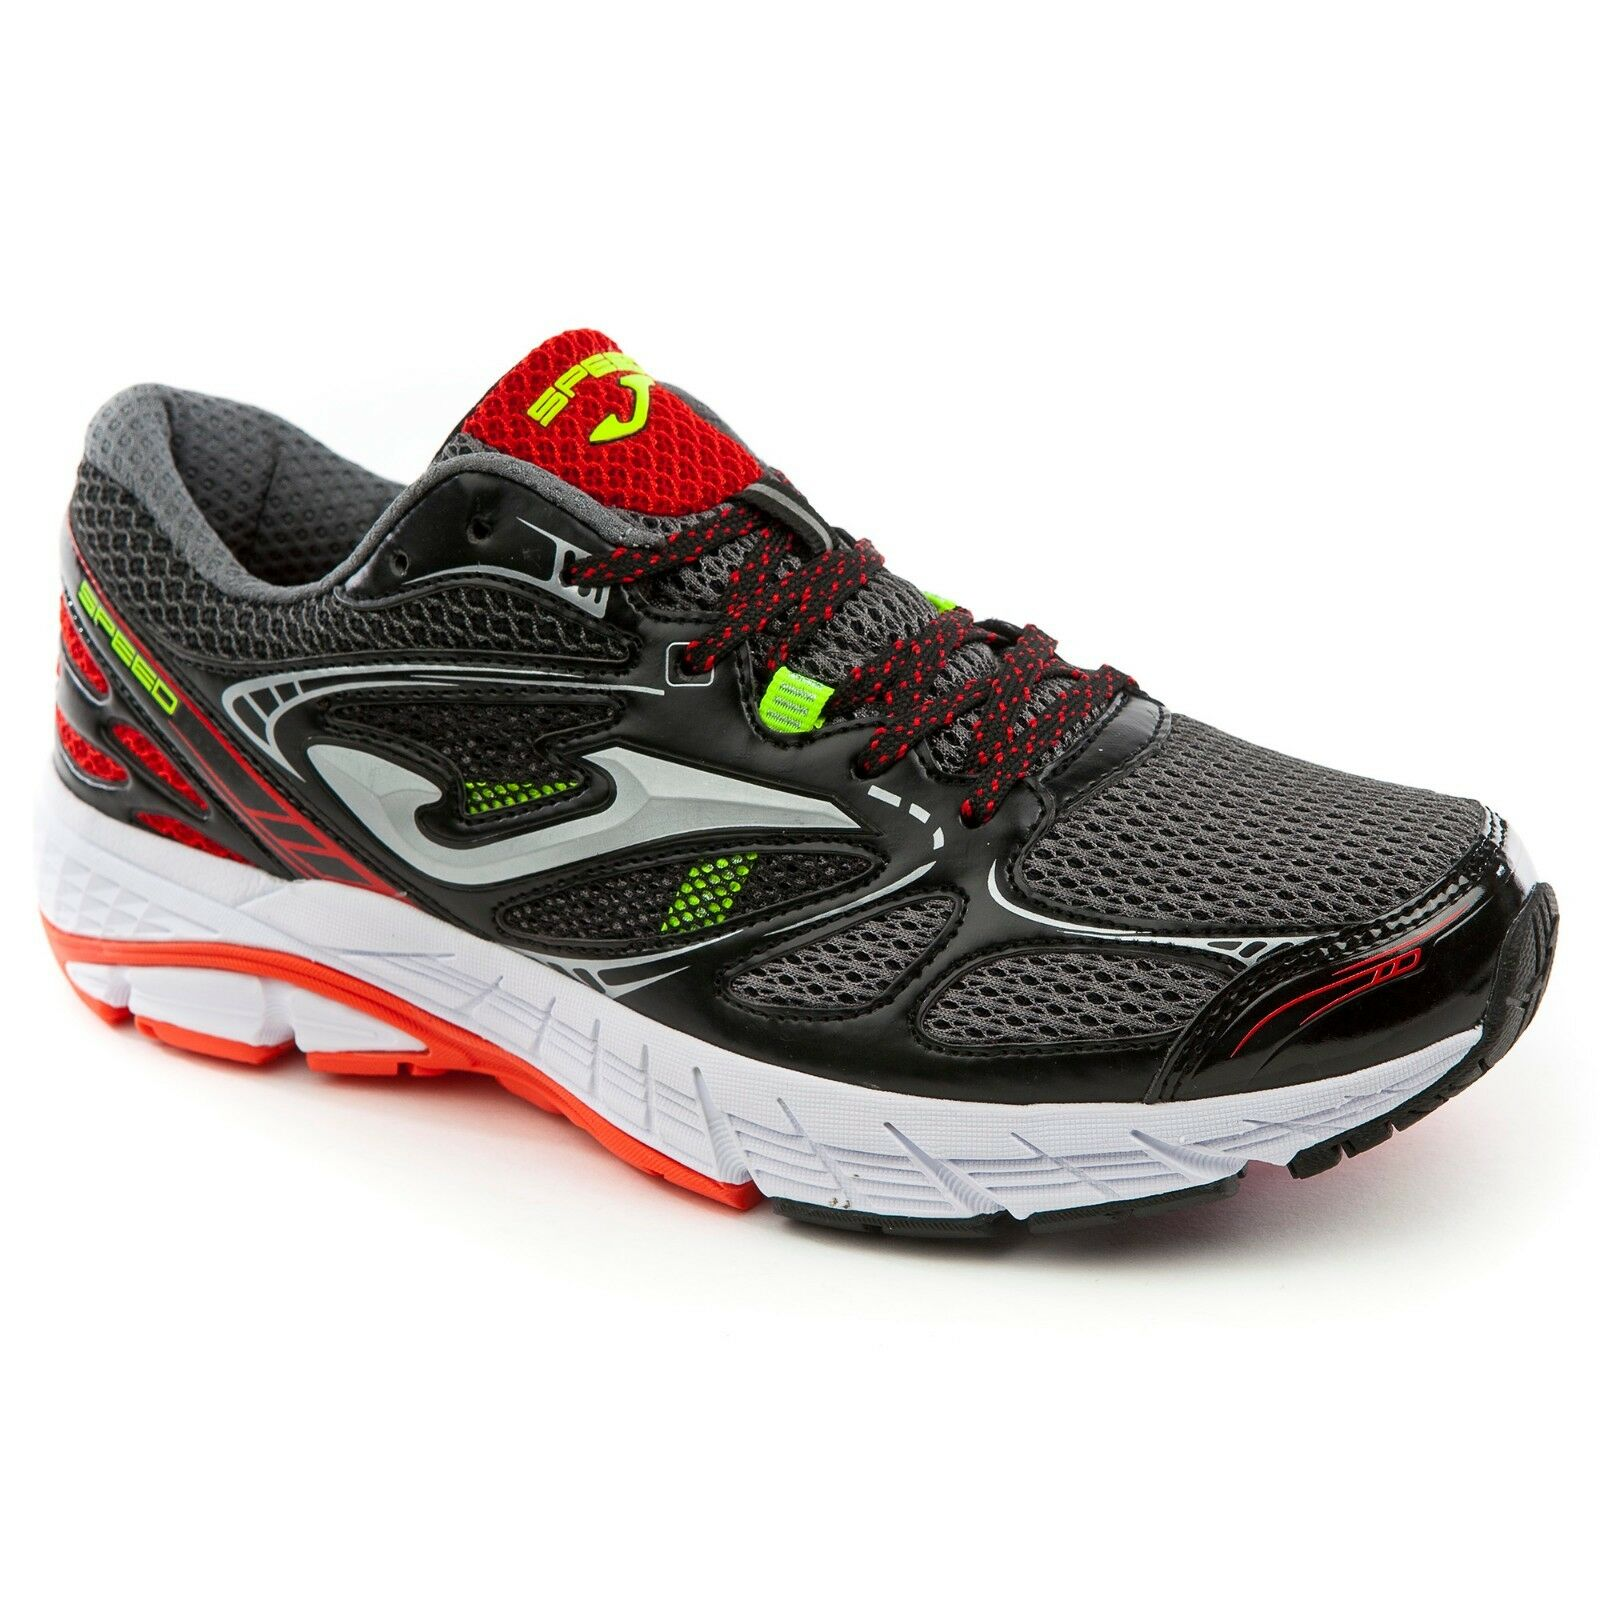 shoes RUNNING JOMA R.SPEED men Art. R.SPEEDW-812 MEN palestra corsa ginnastica